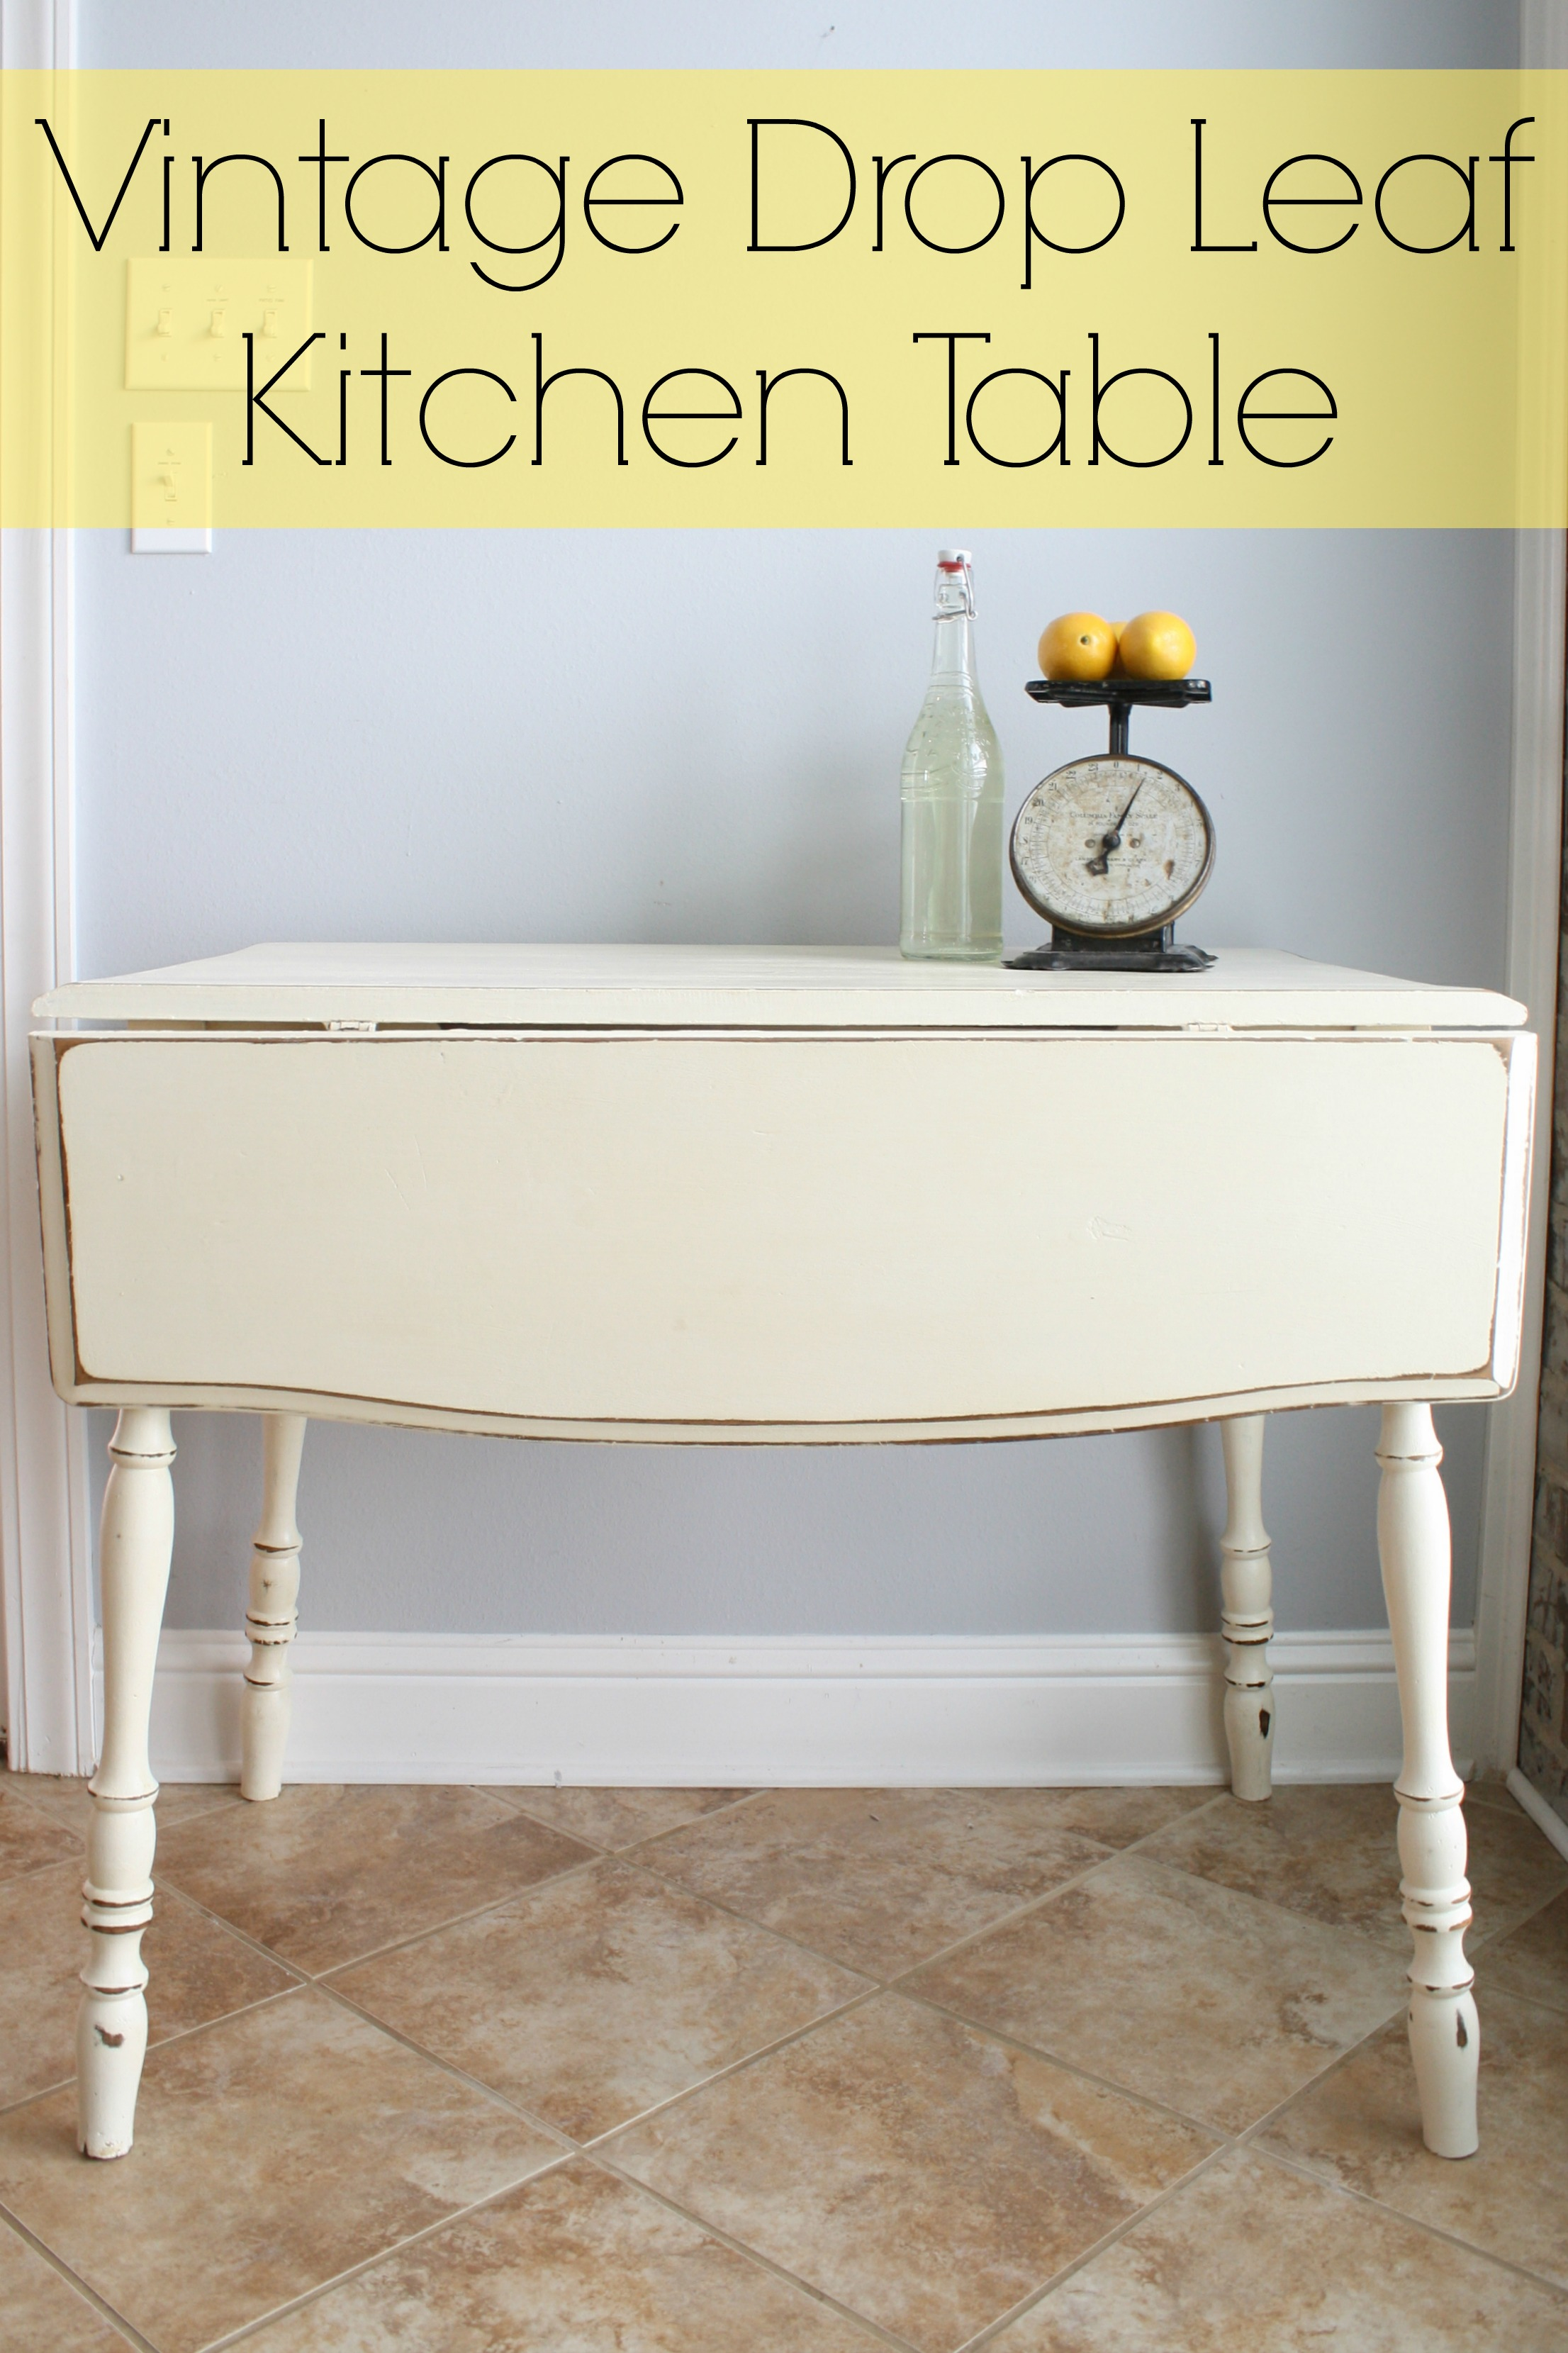 Antique Drop Leaf Kitchen Table Ideas